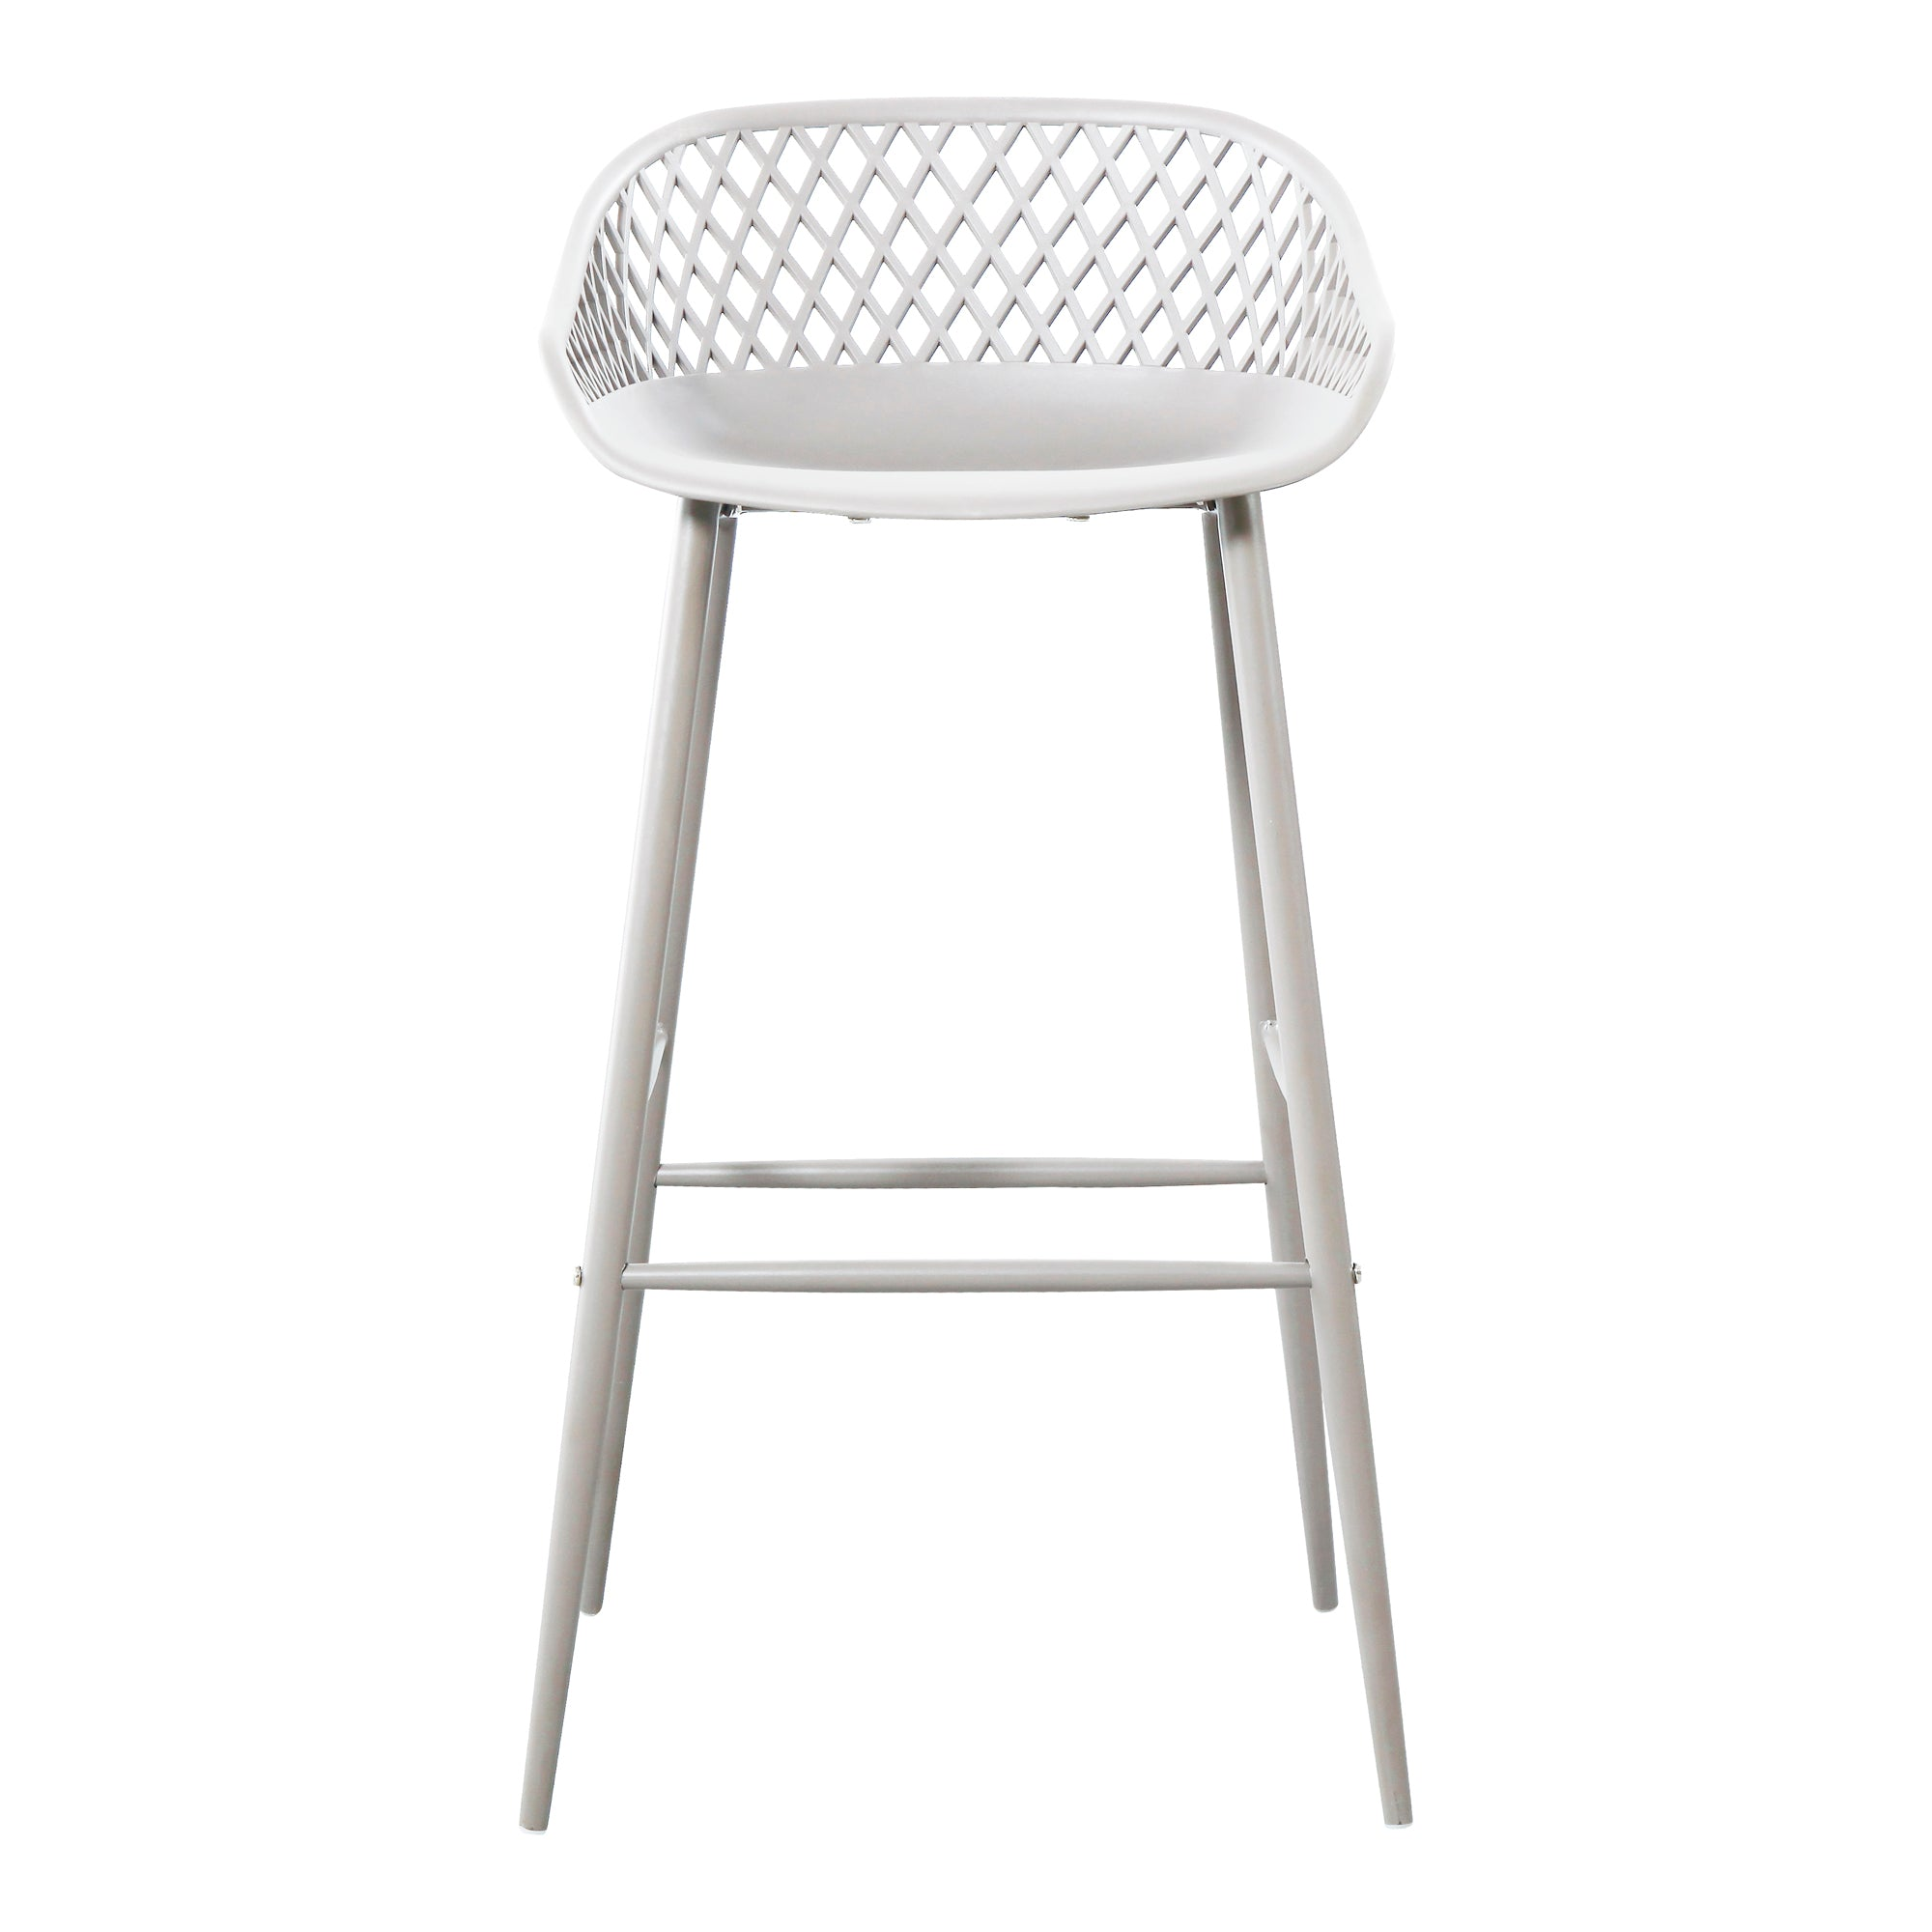 Piazza outdoor barstool, white - Tops-Dress